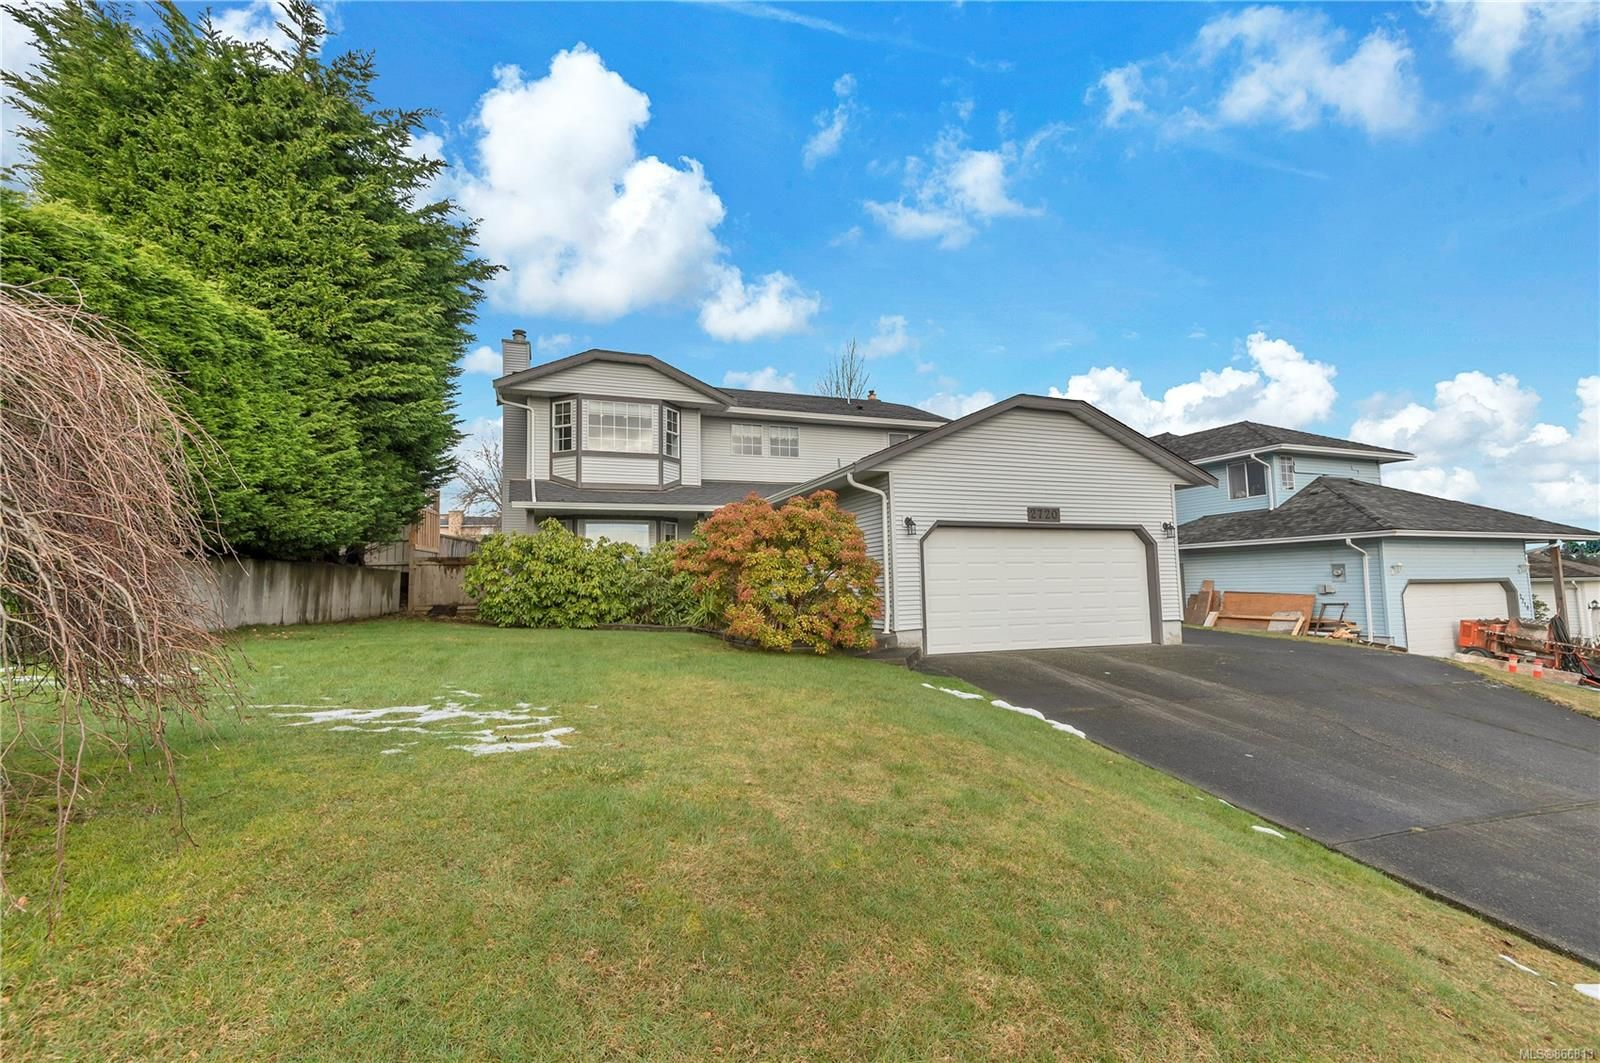 Main Photo: 2720 Keats Ave in : CR Willow Point House for sale (Campbell River)  : MLS®# 866813